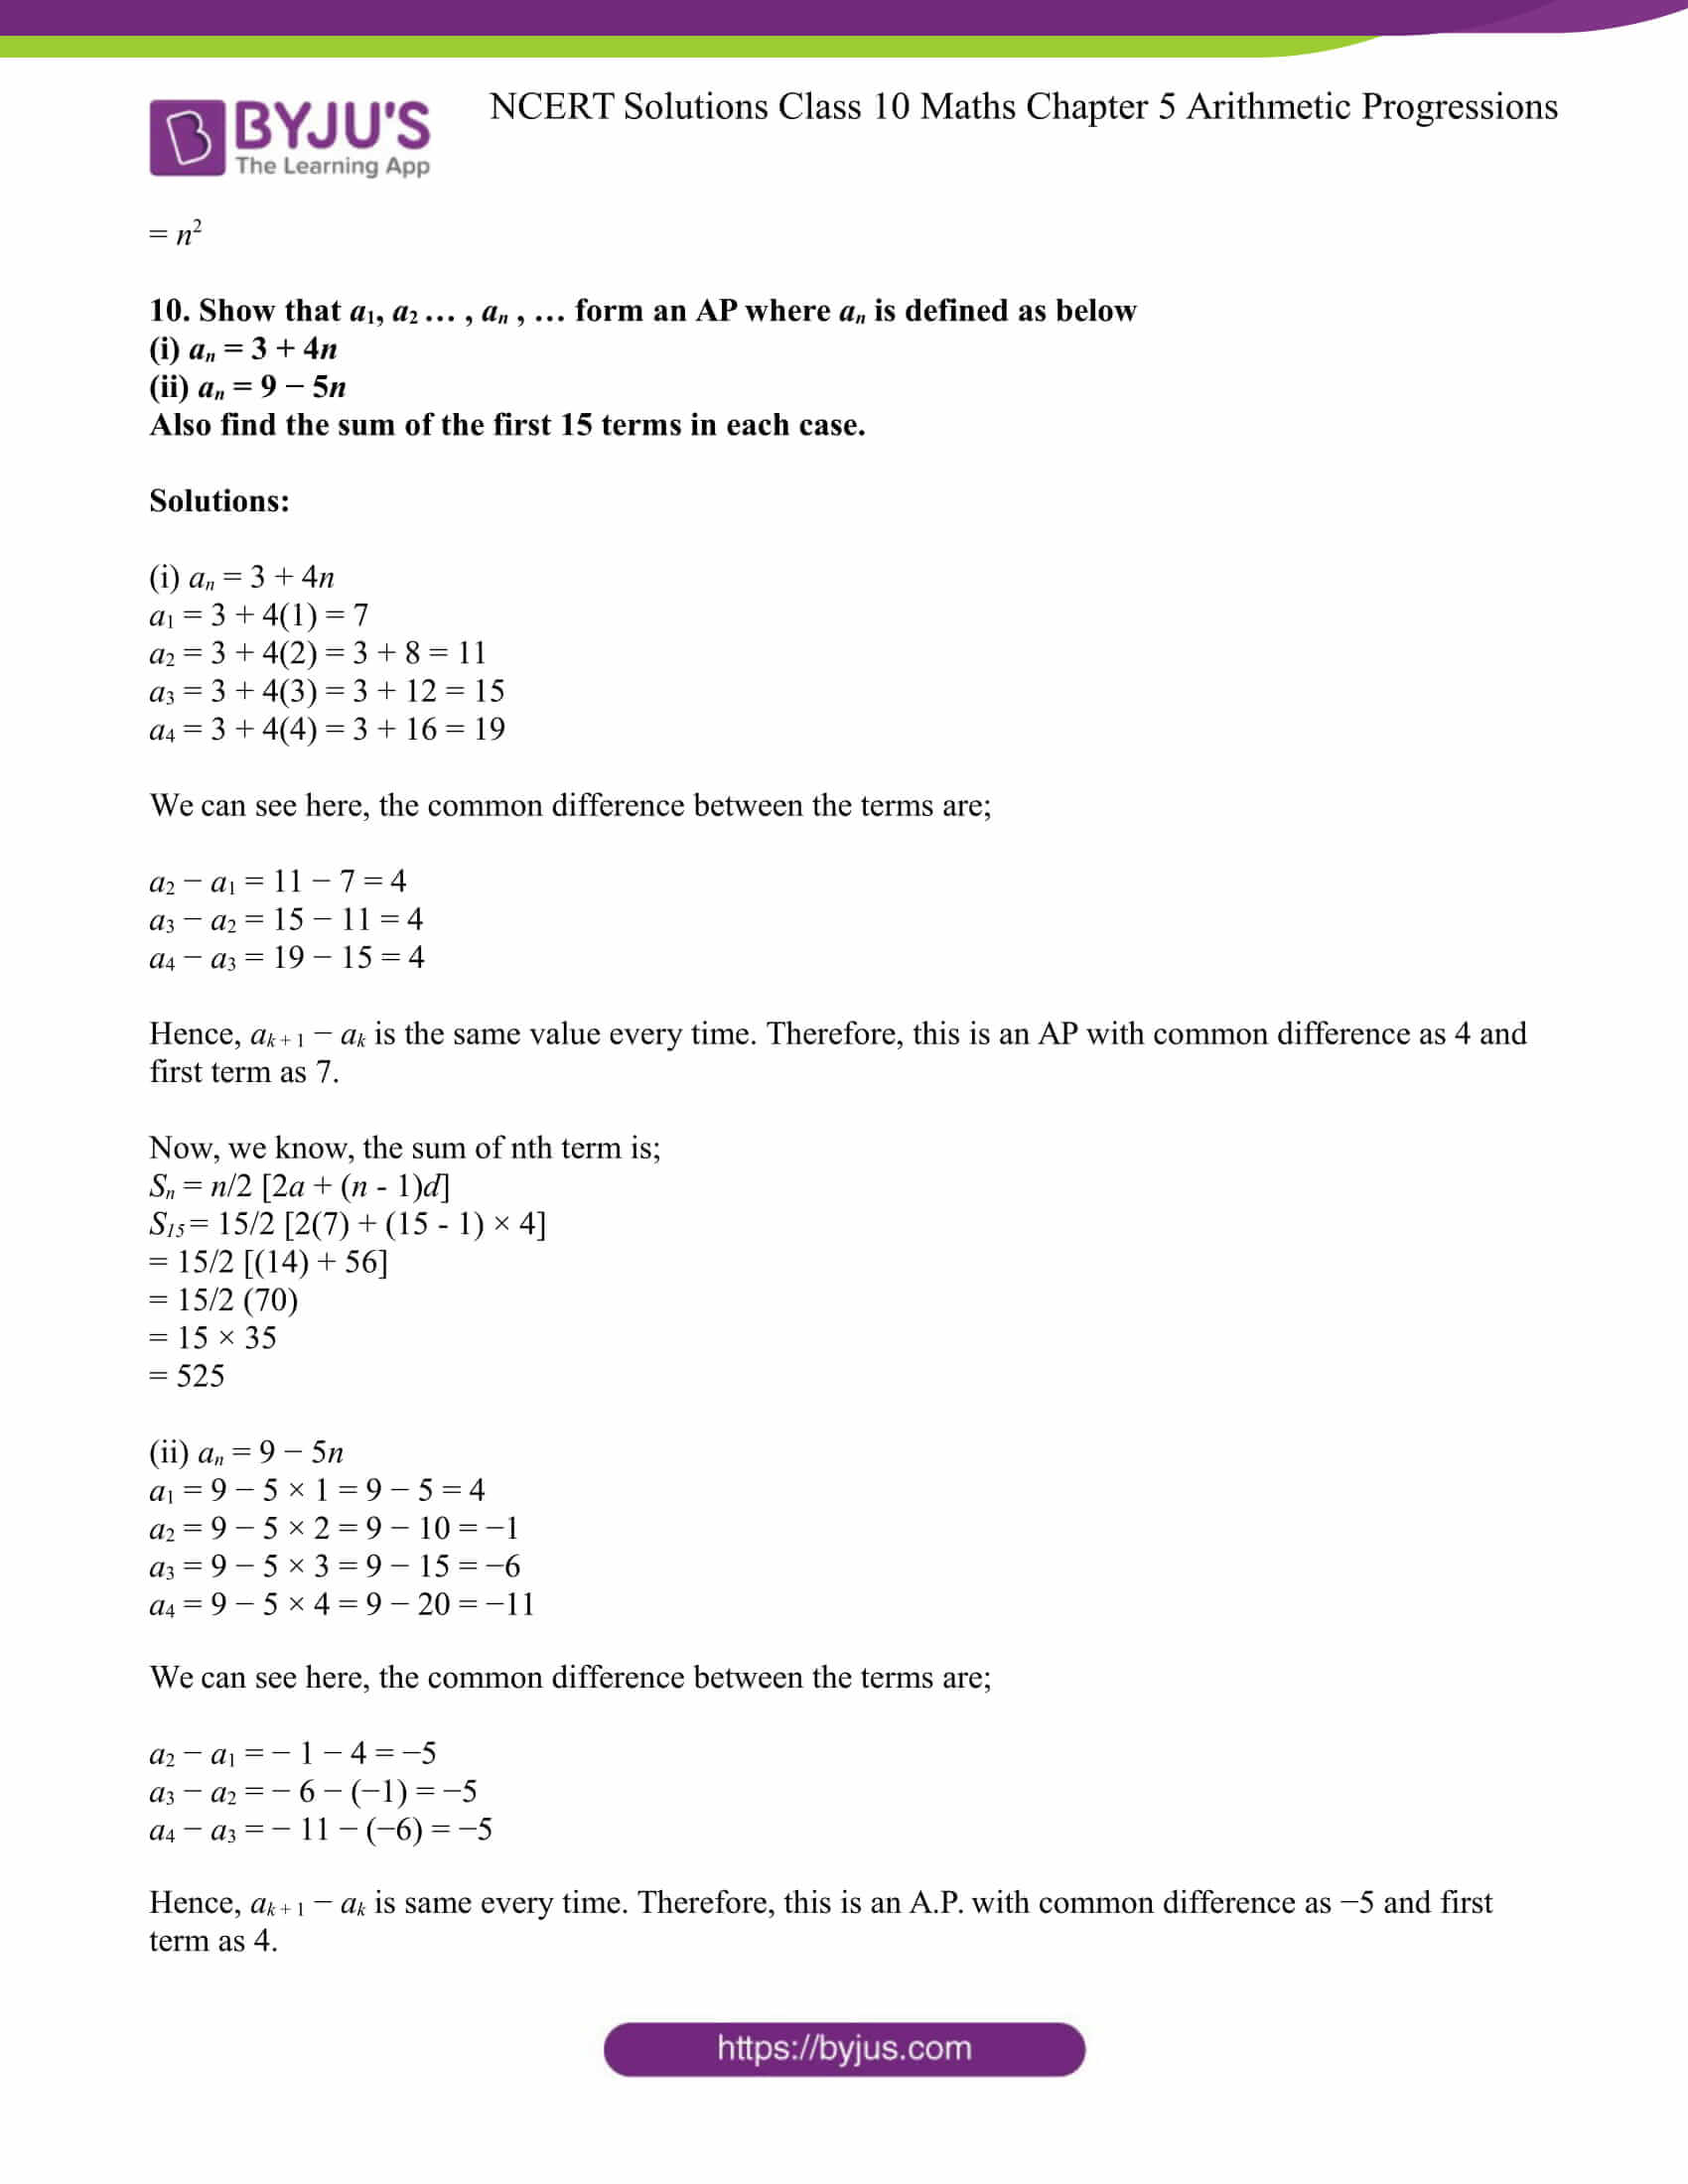 NCERT Solution for CBSE class 10 Maths Chapter 5 Arithmetic Progressions Excercise 5.3 Part 11